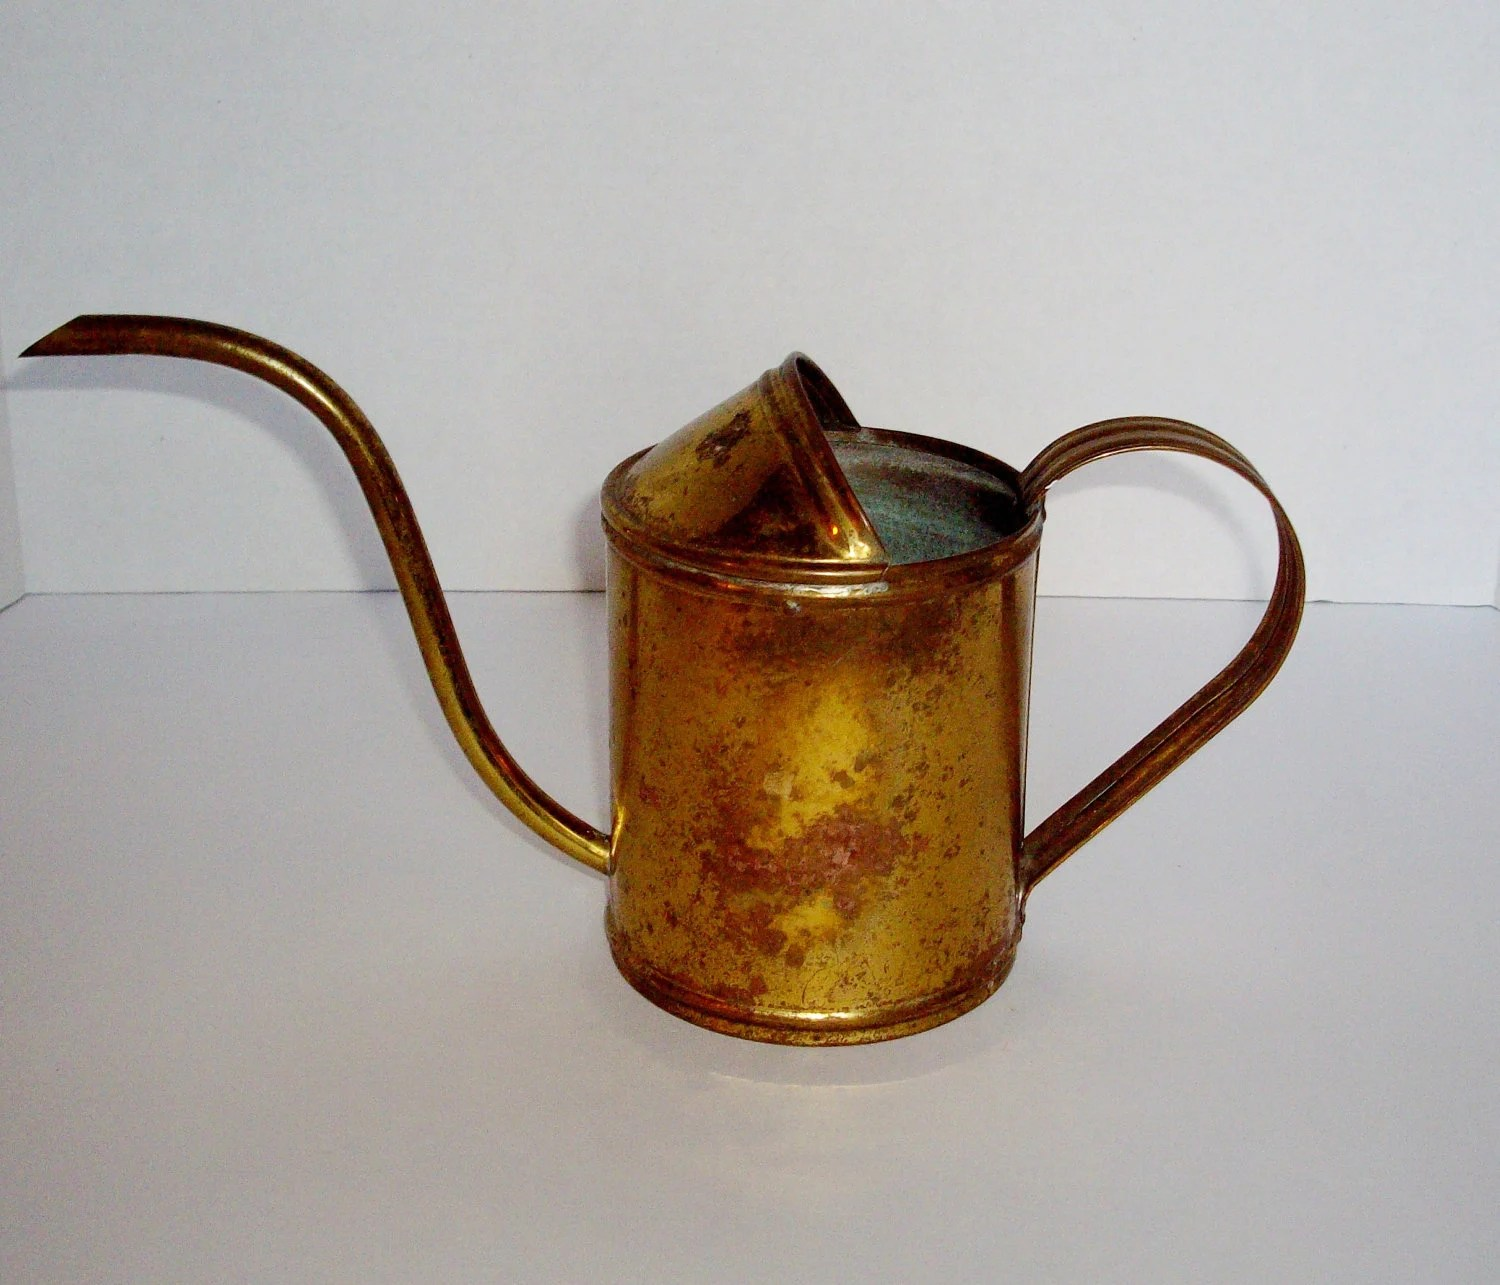 Watering Cans With Long Spouts Vintage Brass Watering Can Small Long Pour Spout